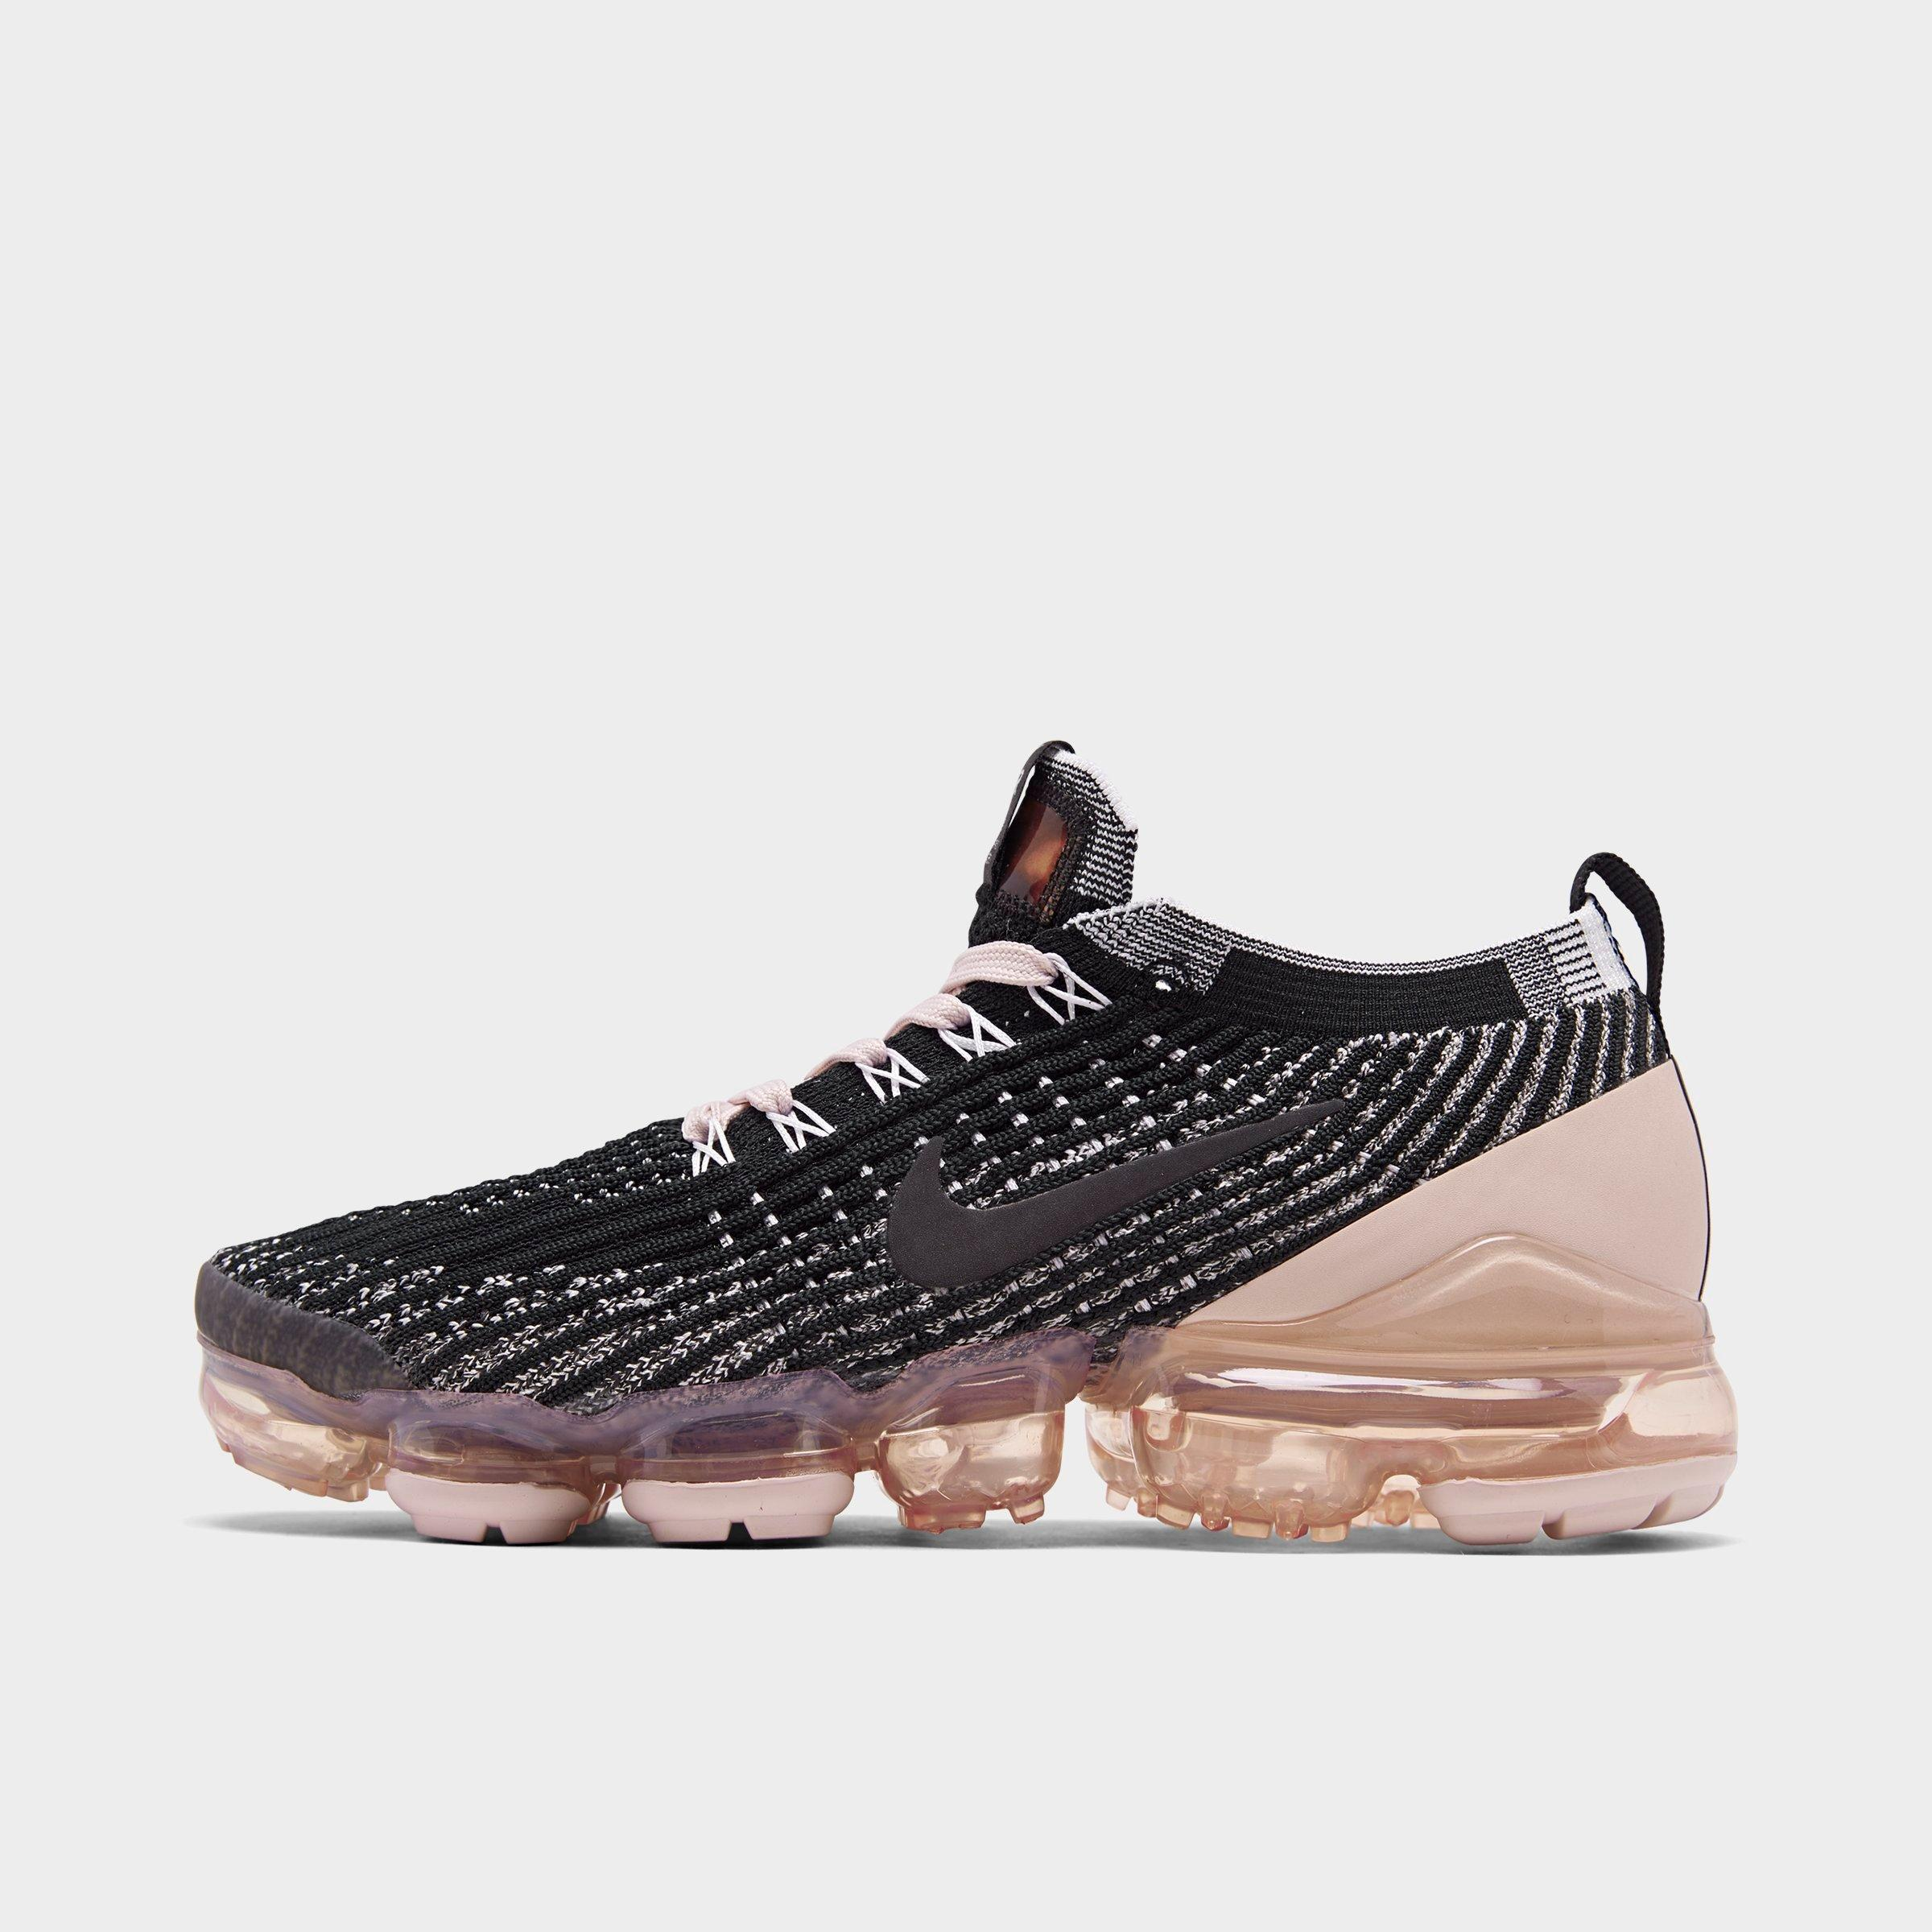 Nike Air Vapormax Shoes Buy Cheap Nike Air Vapormax Plus Running Shoes Fake Sale 2020